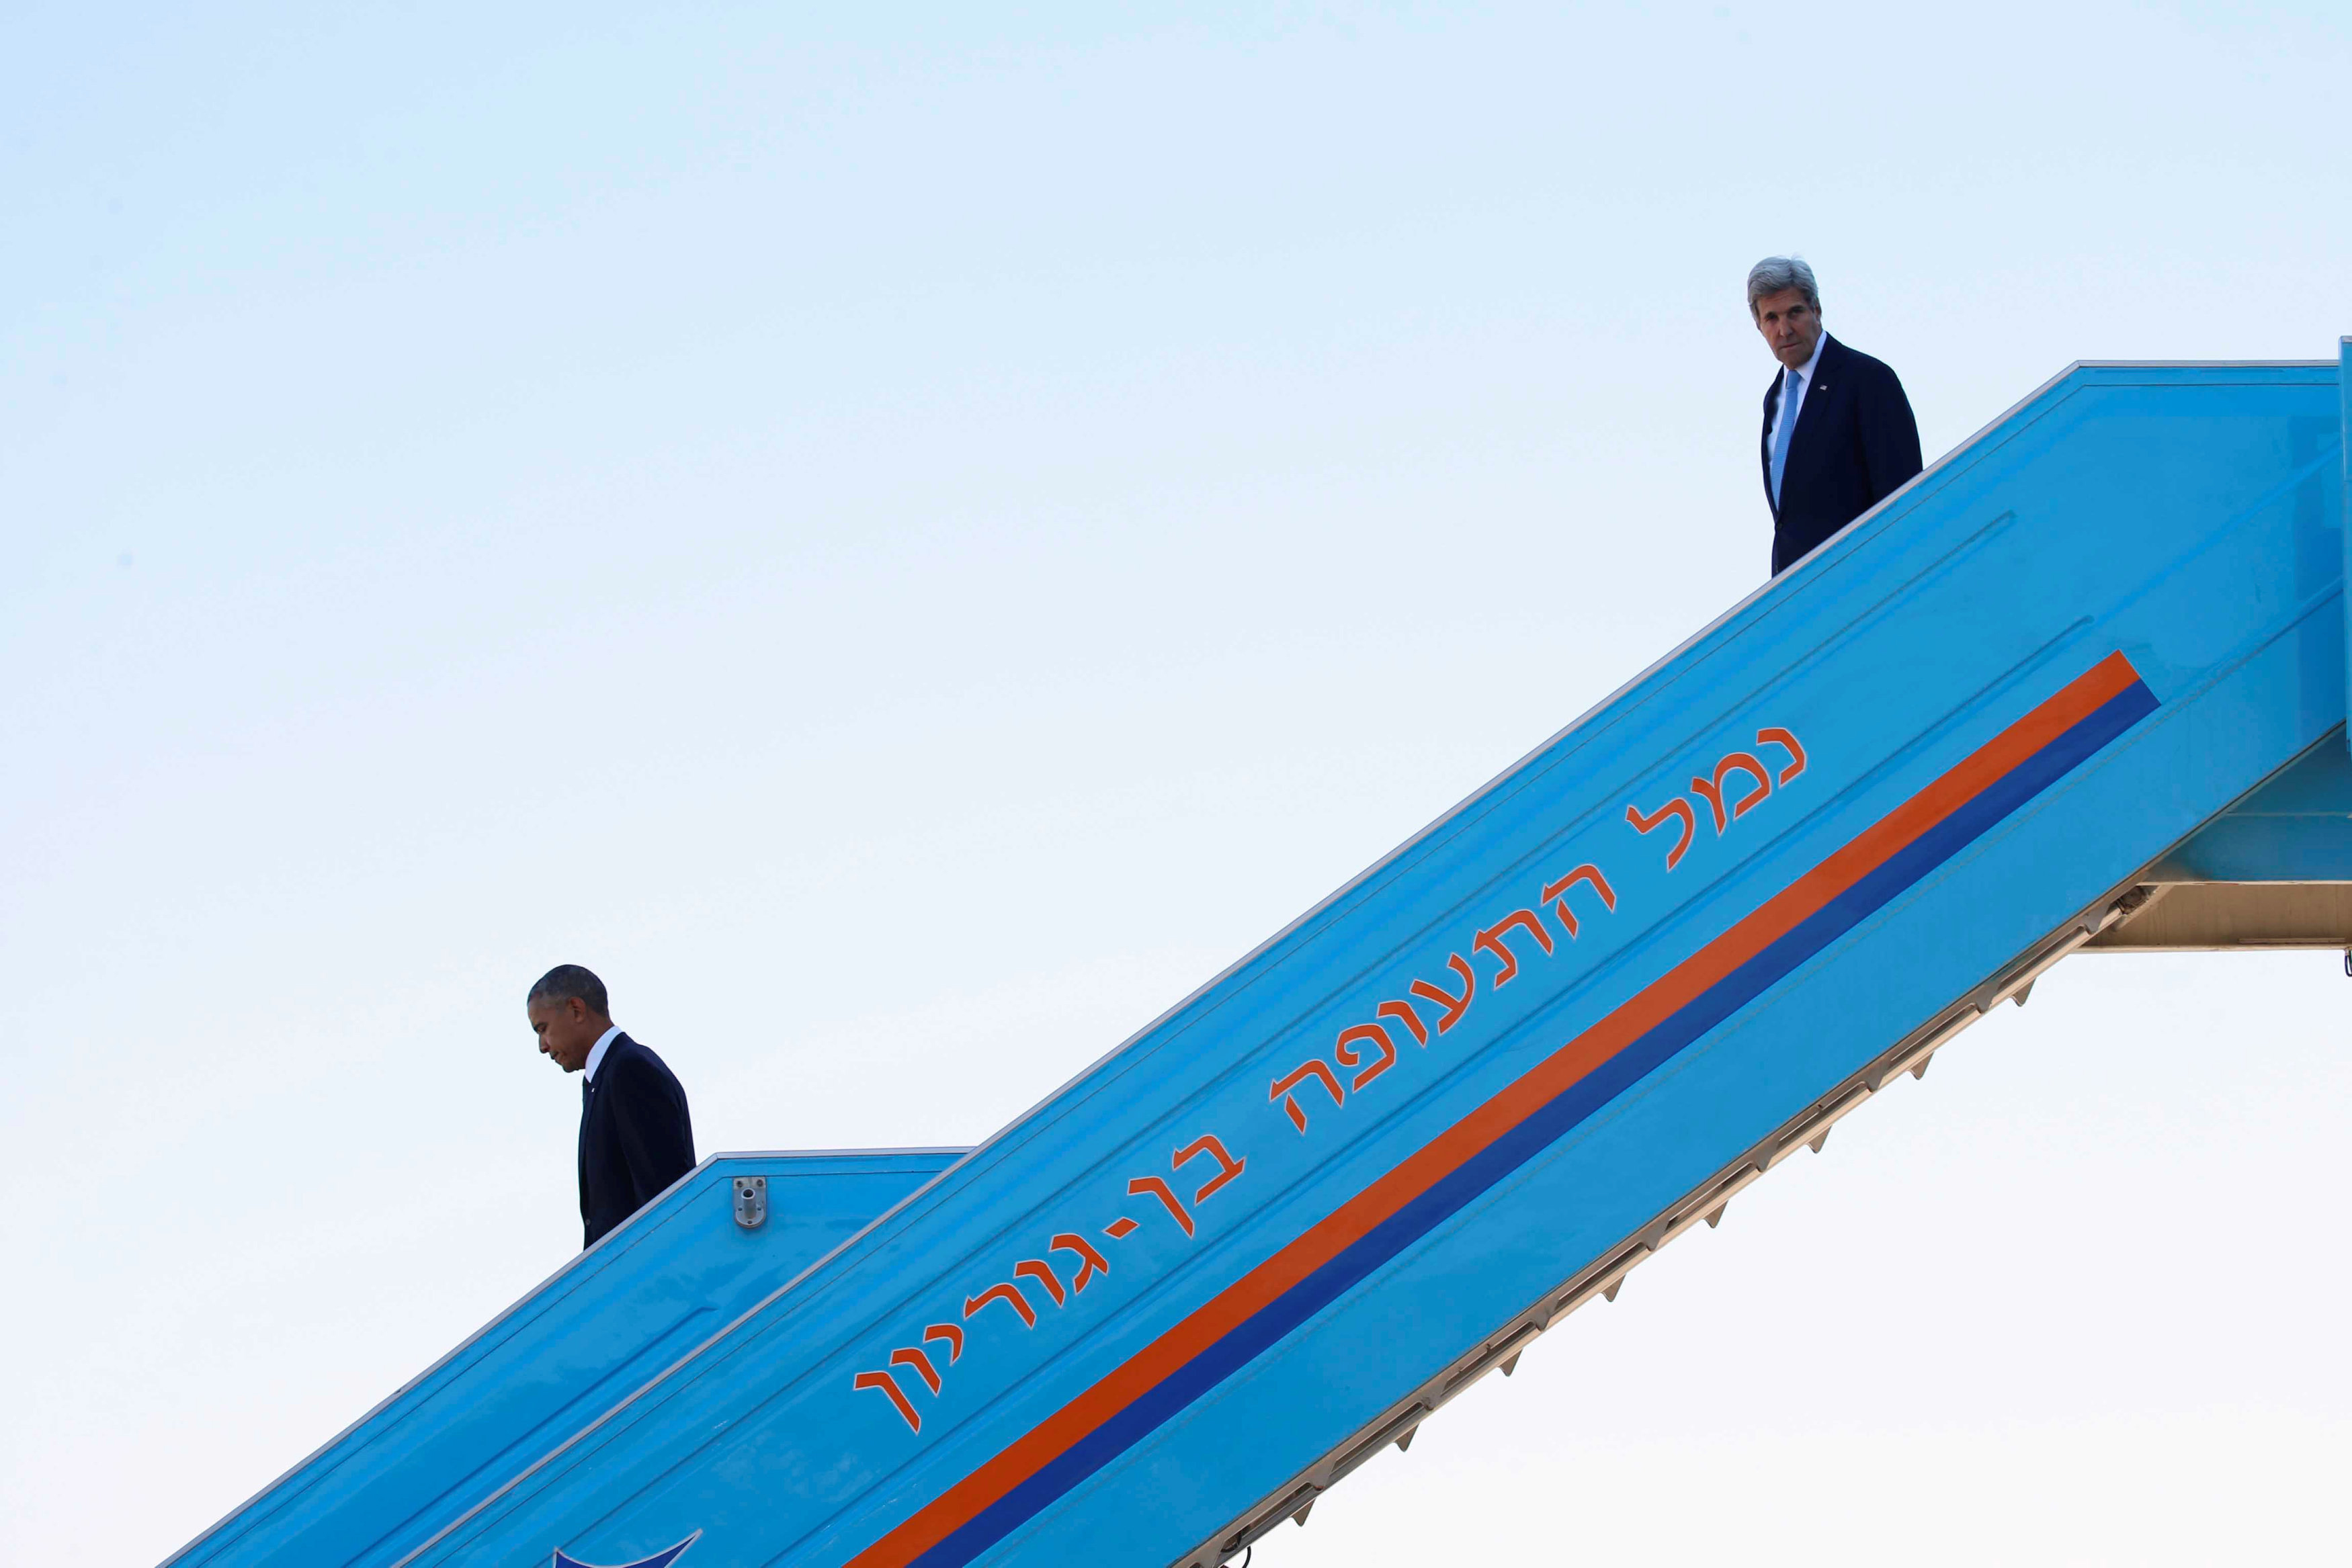 U.S President Barack Obama (L) and U.S. Secretary of State John Kerry disembark Air Force One upon landing at Israel's Ben Gurion International airport to attend the funeral of former Israeli President Shimon Peres, in Lod, Israel September 30, 2016.